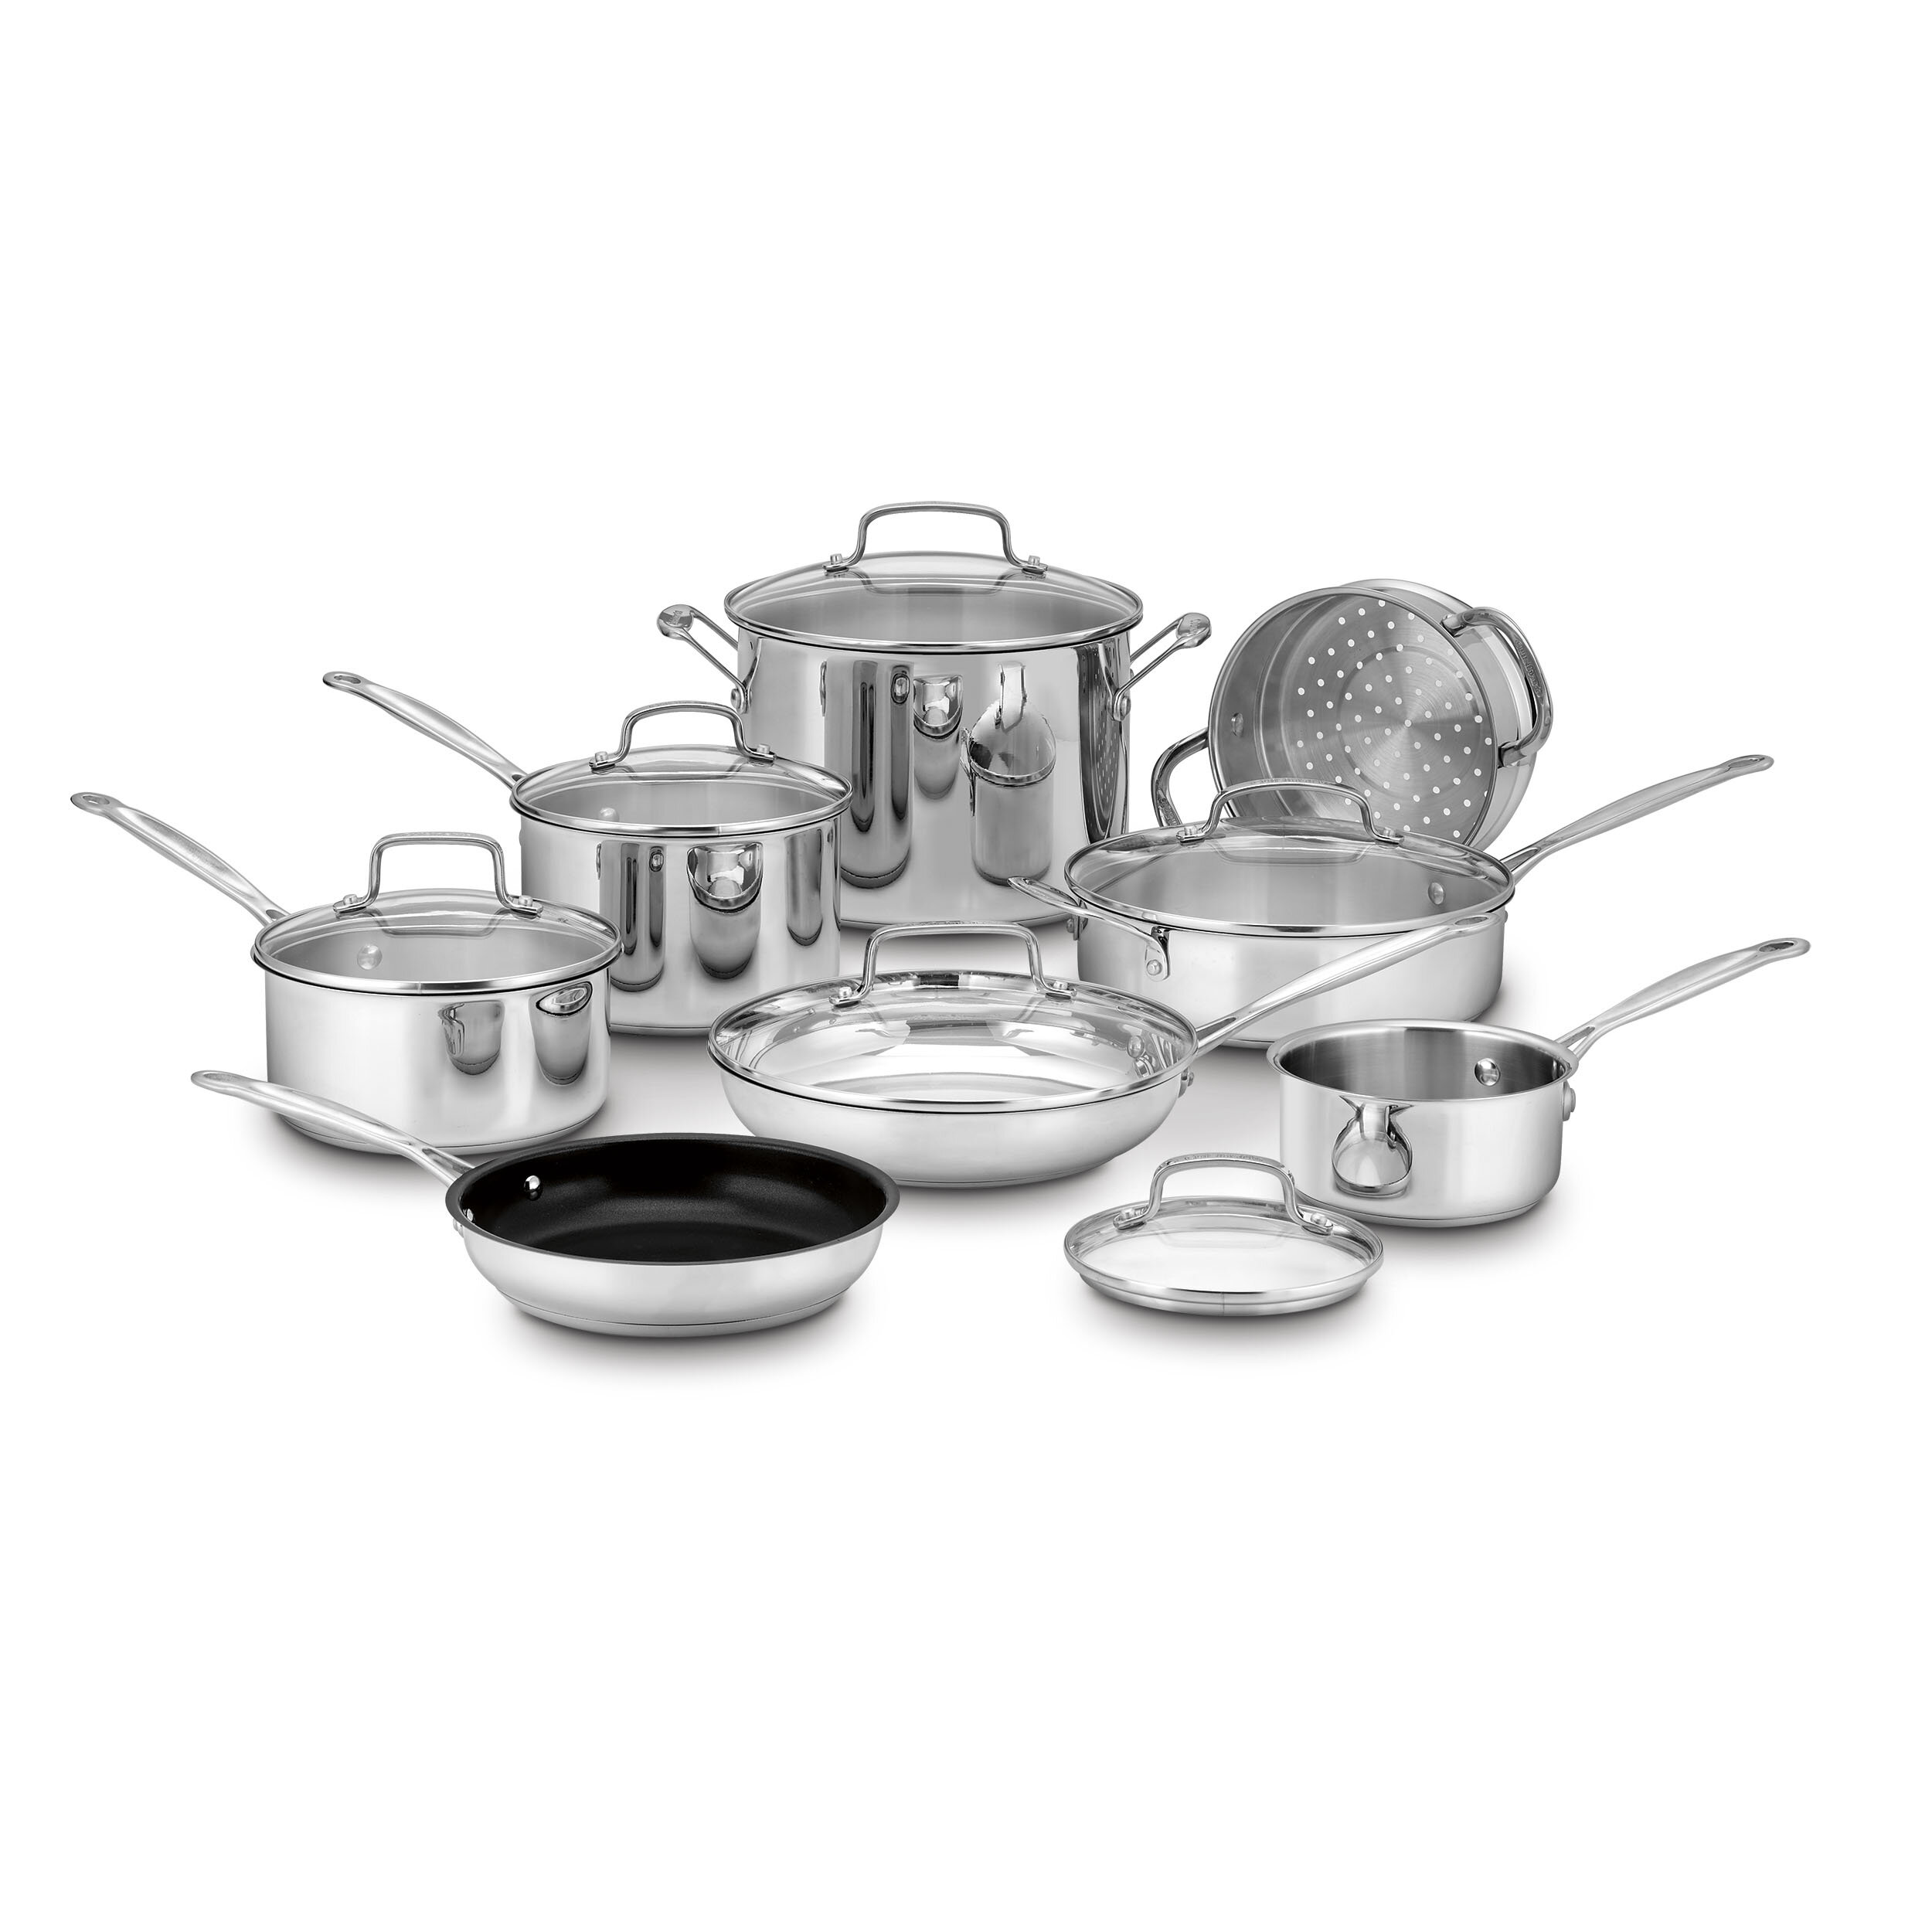 Stainless Steel Cookware Set Reviews